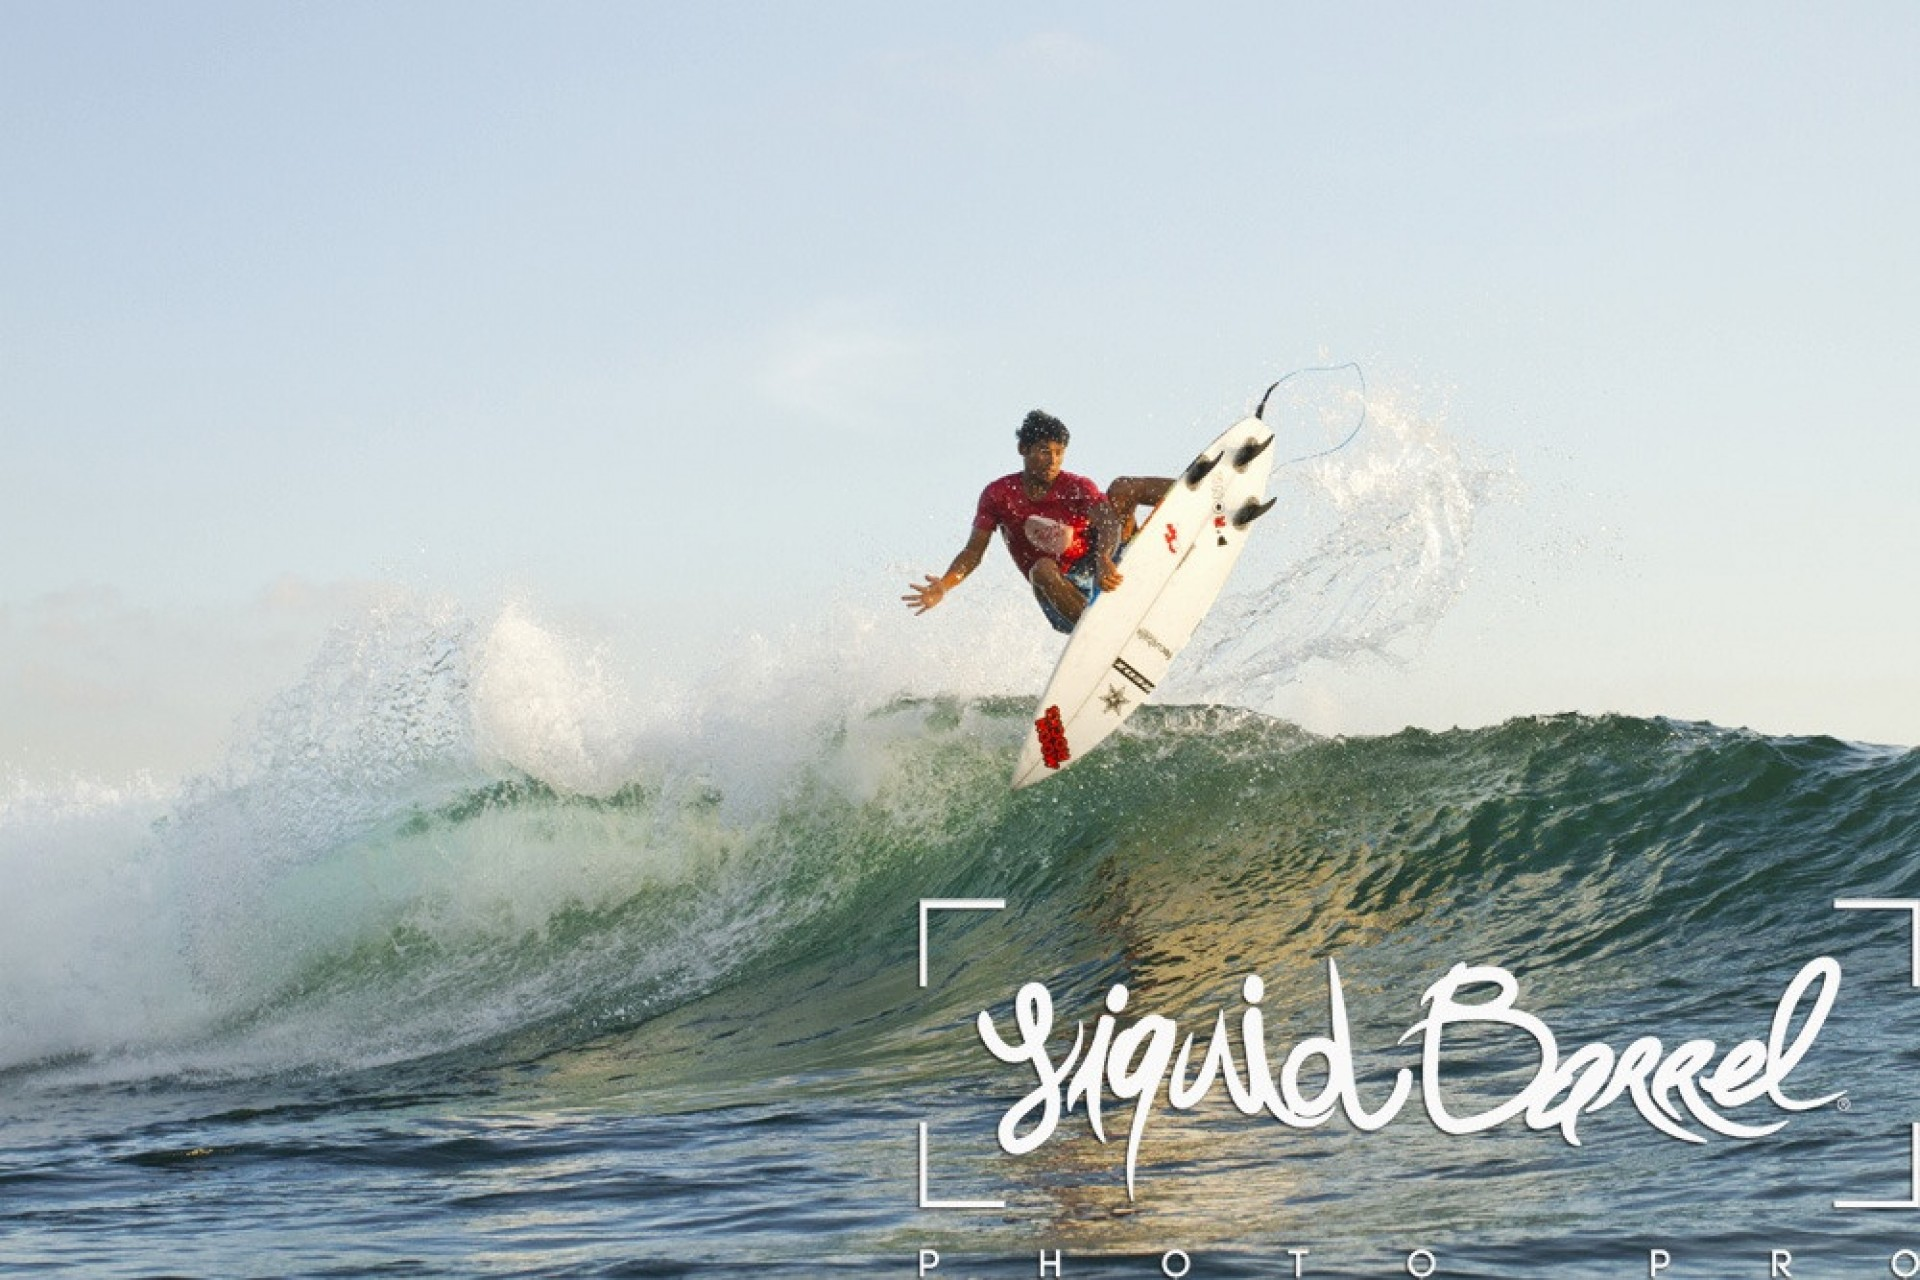 Liquid Barrel's photo of Canggu